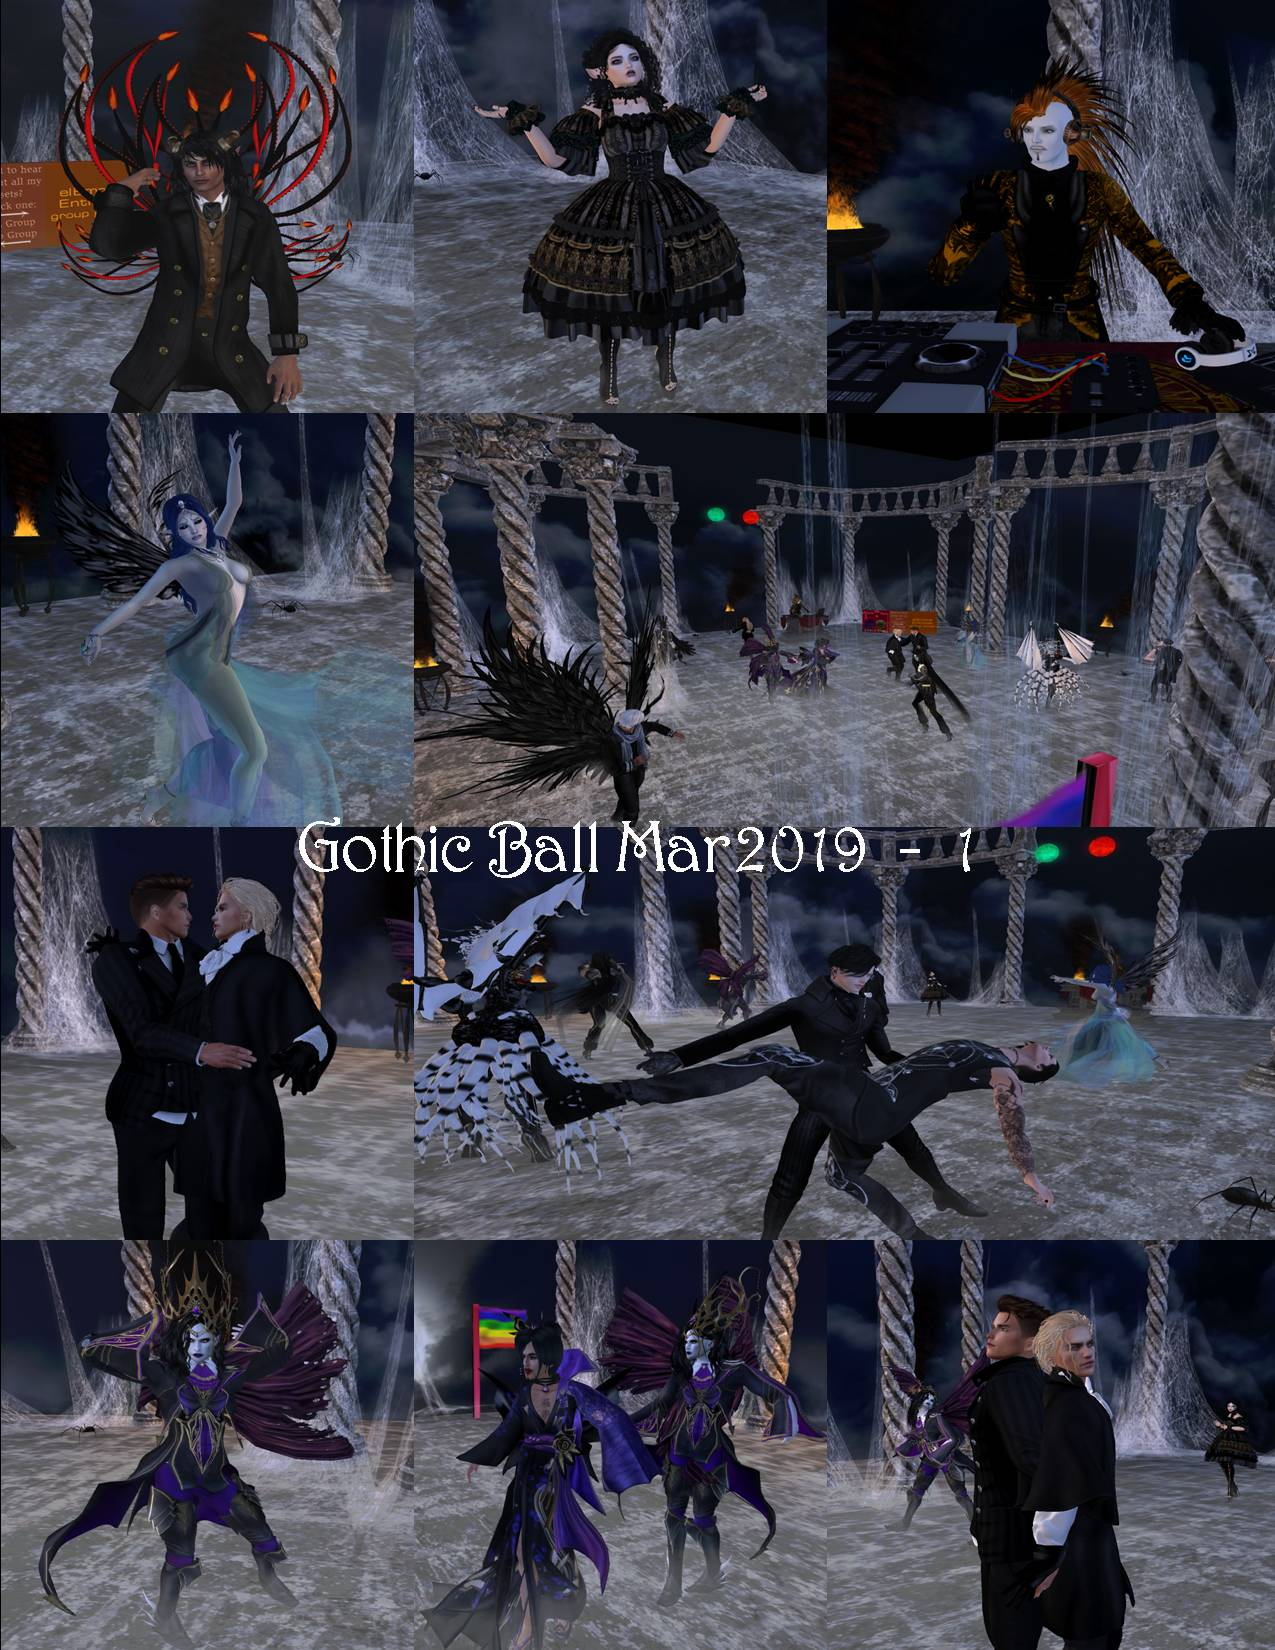 GOTHIC BALL COLLAGE MAR 2019